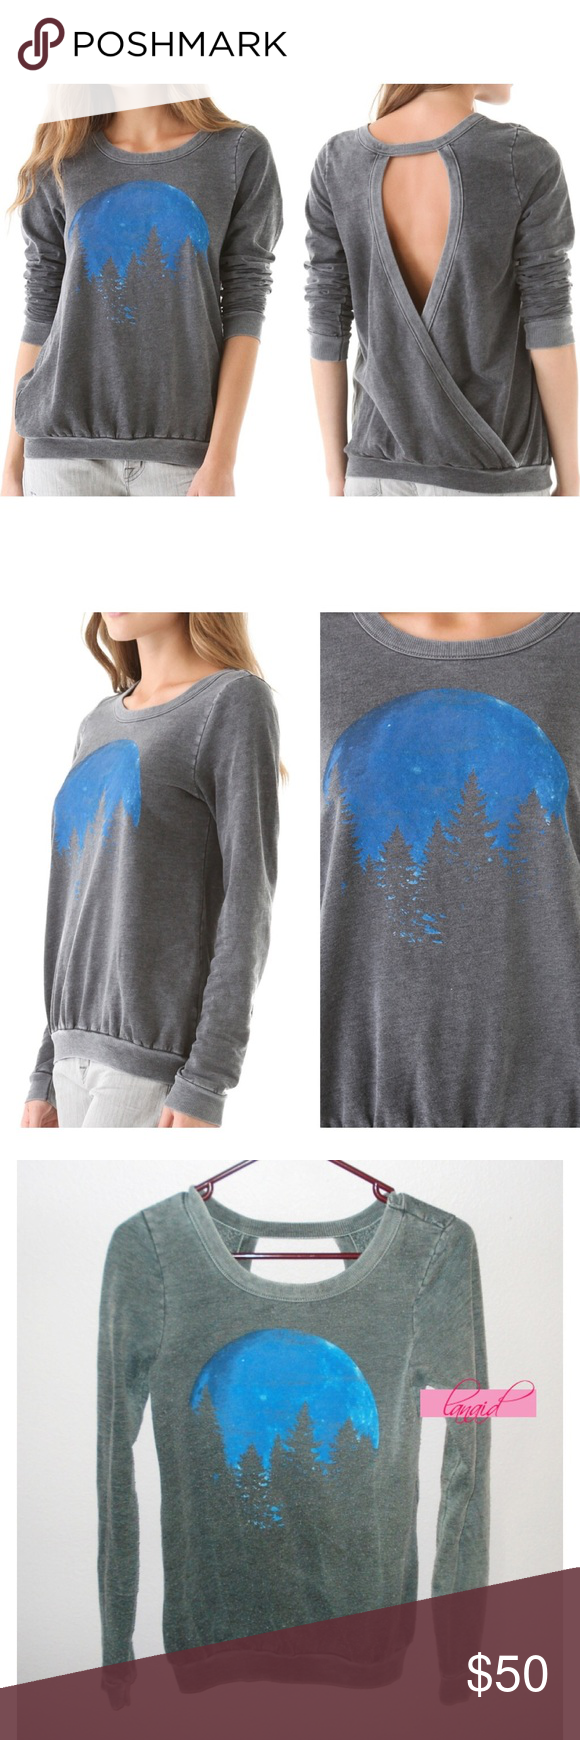 """Chaser Blue Moon Open Back Sweatshirt Forest Trees PRICE IS FIRM AND NON-NEGOTIABLE. NO OFFERS. NO TRADES. Chaser """"Blue Moon"""" pullover sweatshirt in Acid Gray, size XS (may also fit a size S). Sexy crossover open back. Featuring a faded tree/forest/moon graphic. Heavily distressed throughout with factory pilling all-over to lend a worn-in and vintage look to this awesome sweater. All distressing is intentional. Super soft. Chaser Sweaters Crew & Scoop Necks"""